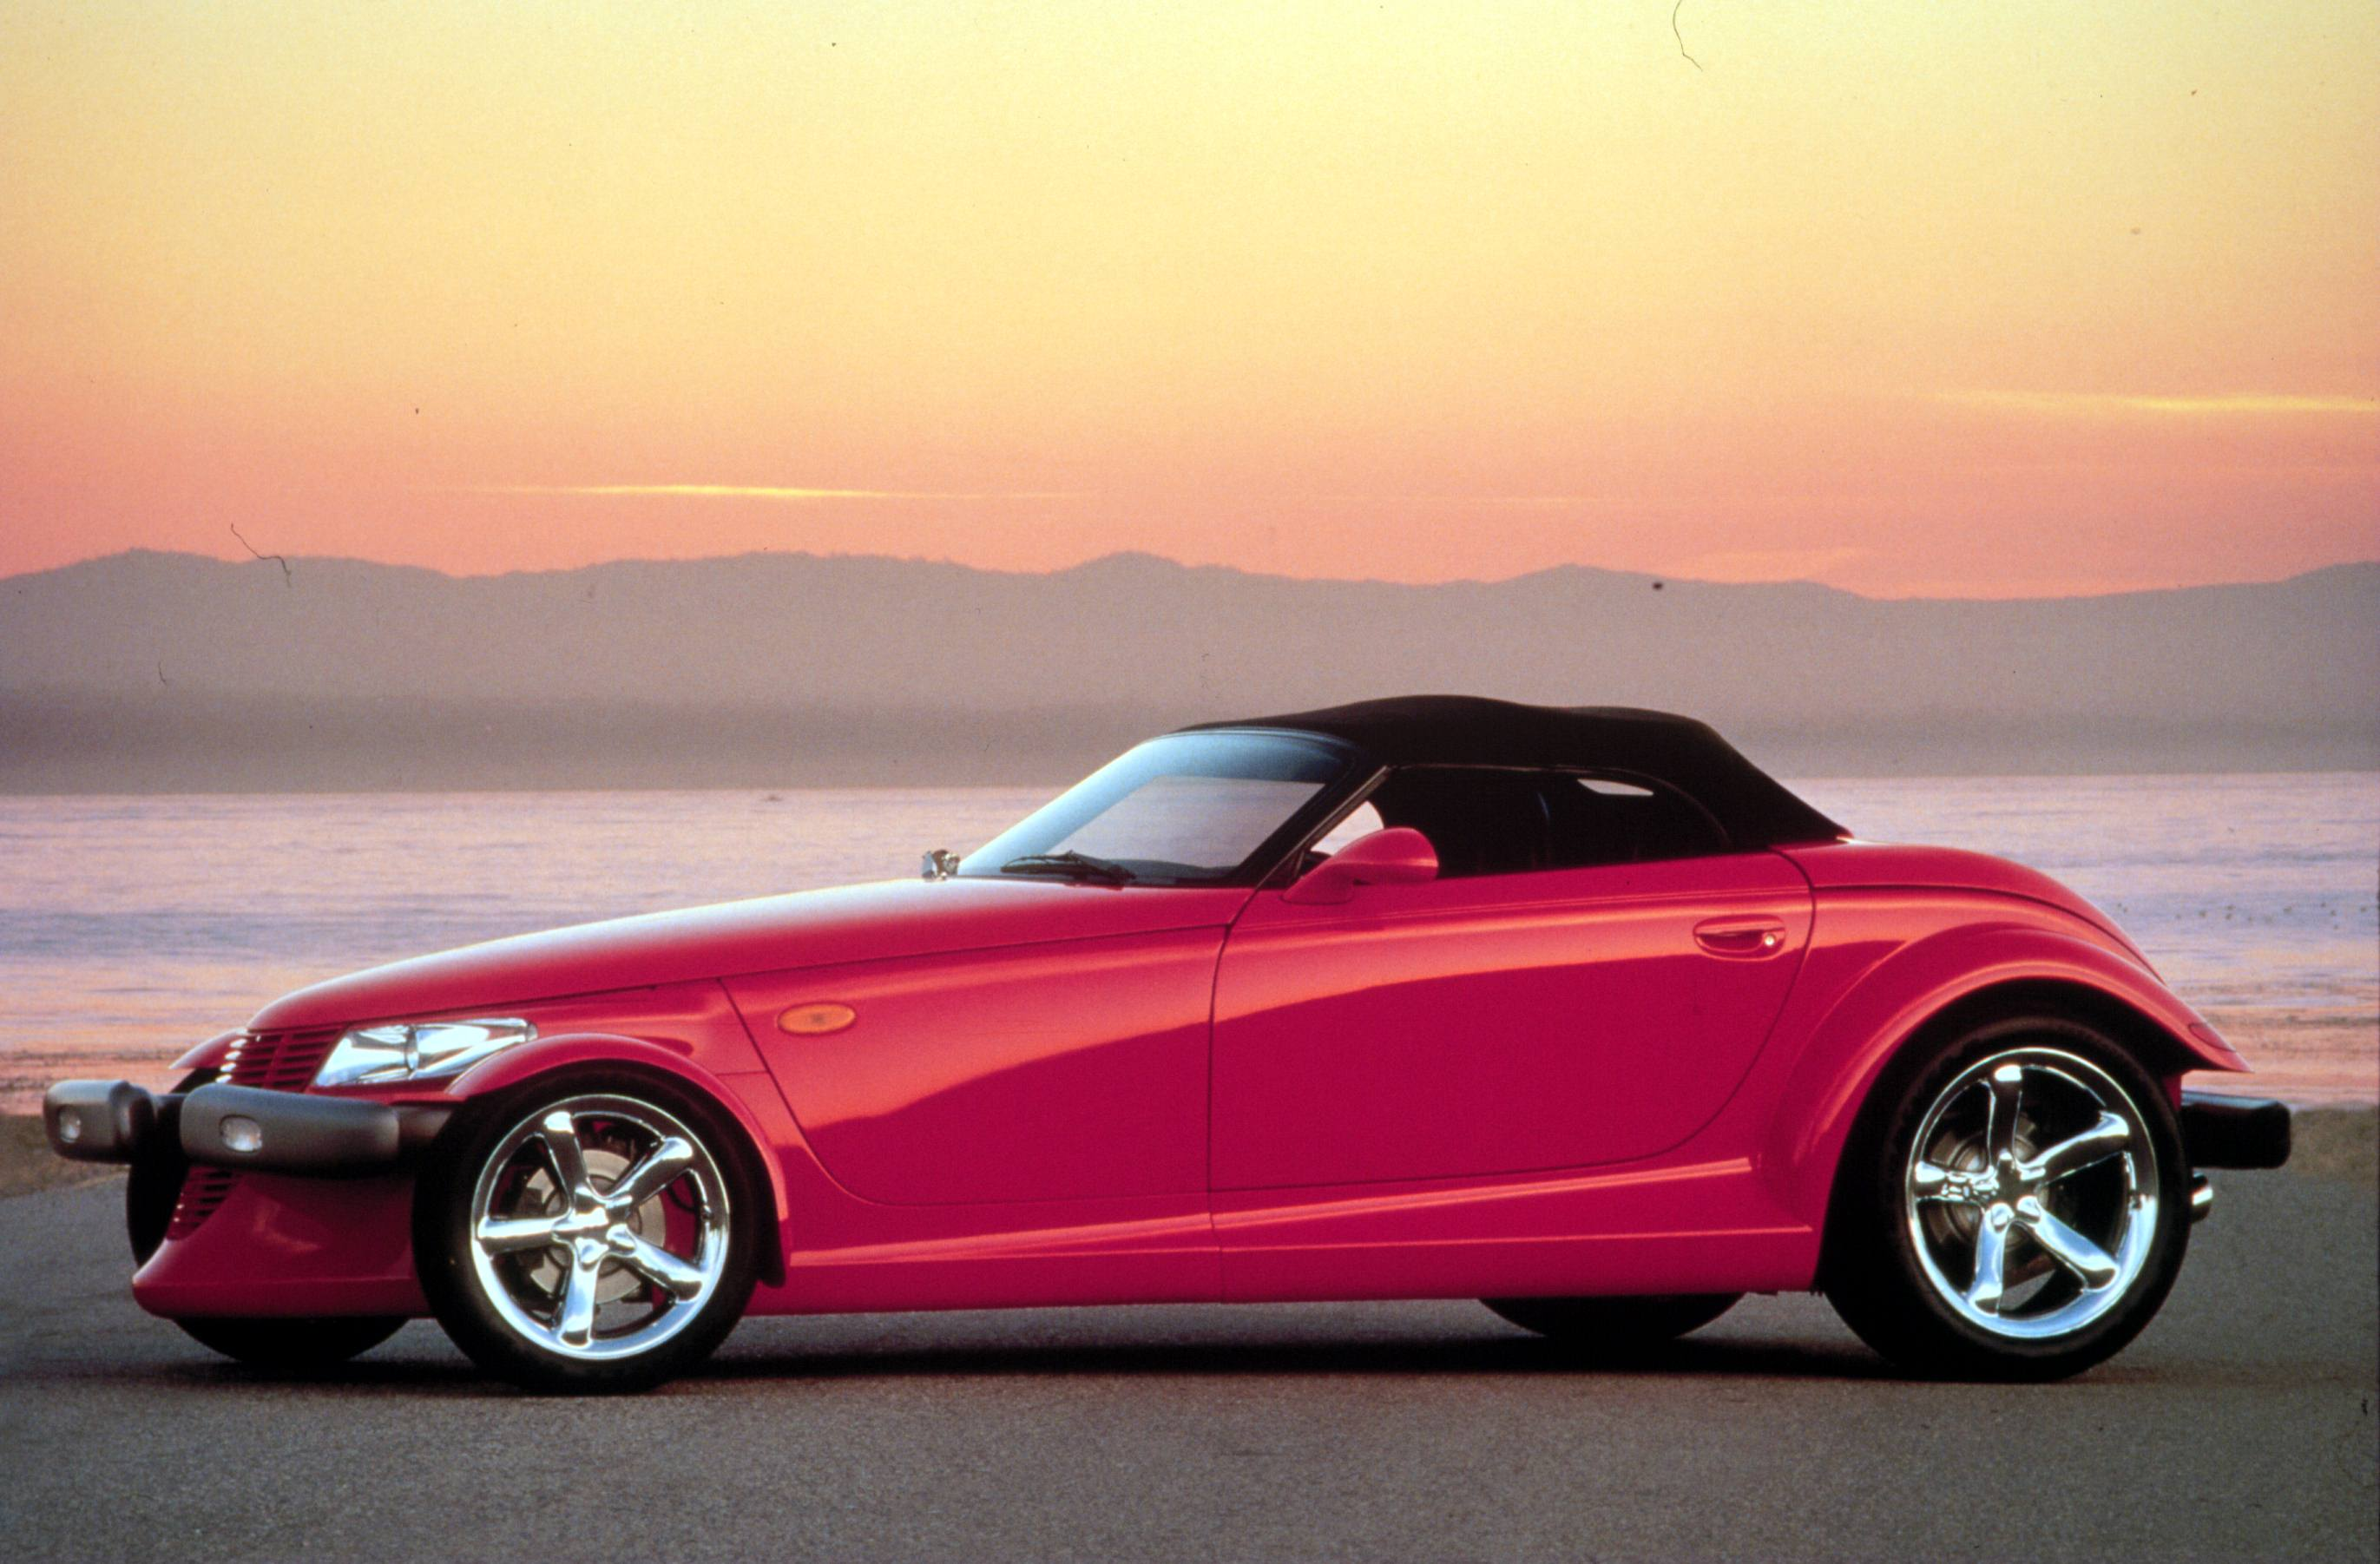 Plymouth Prowler profile